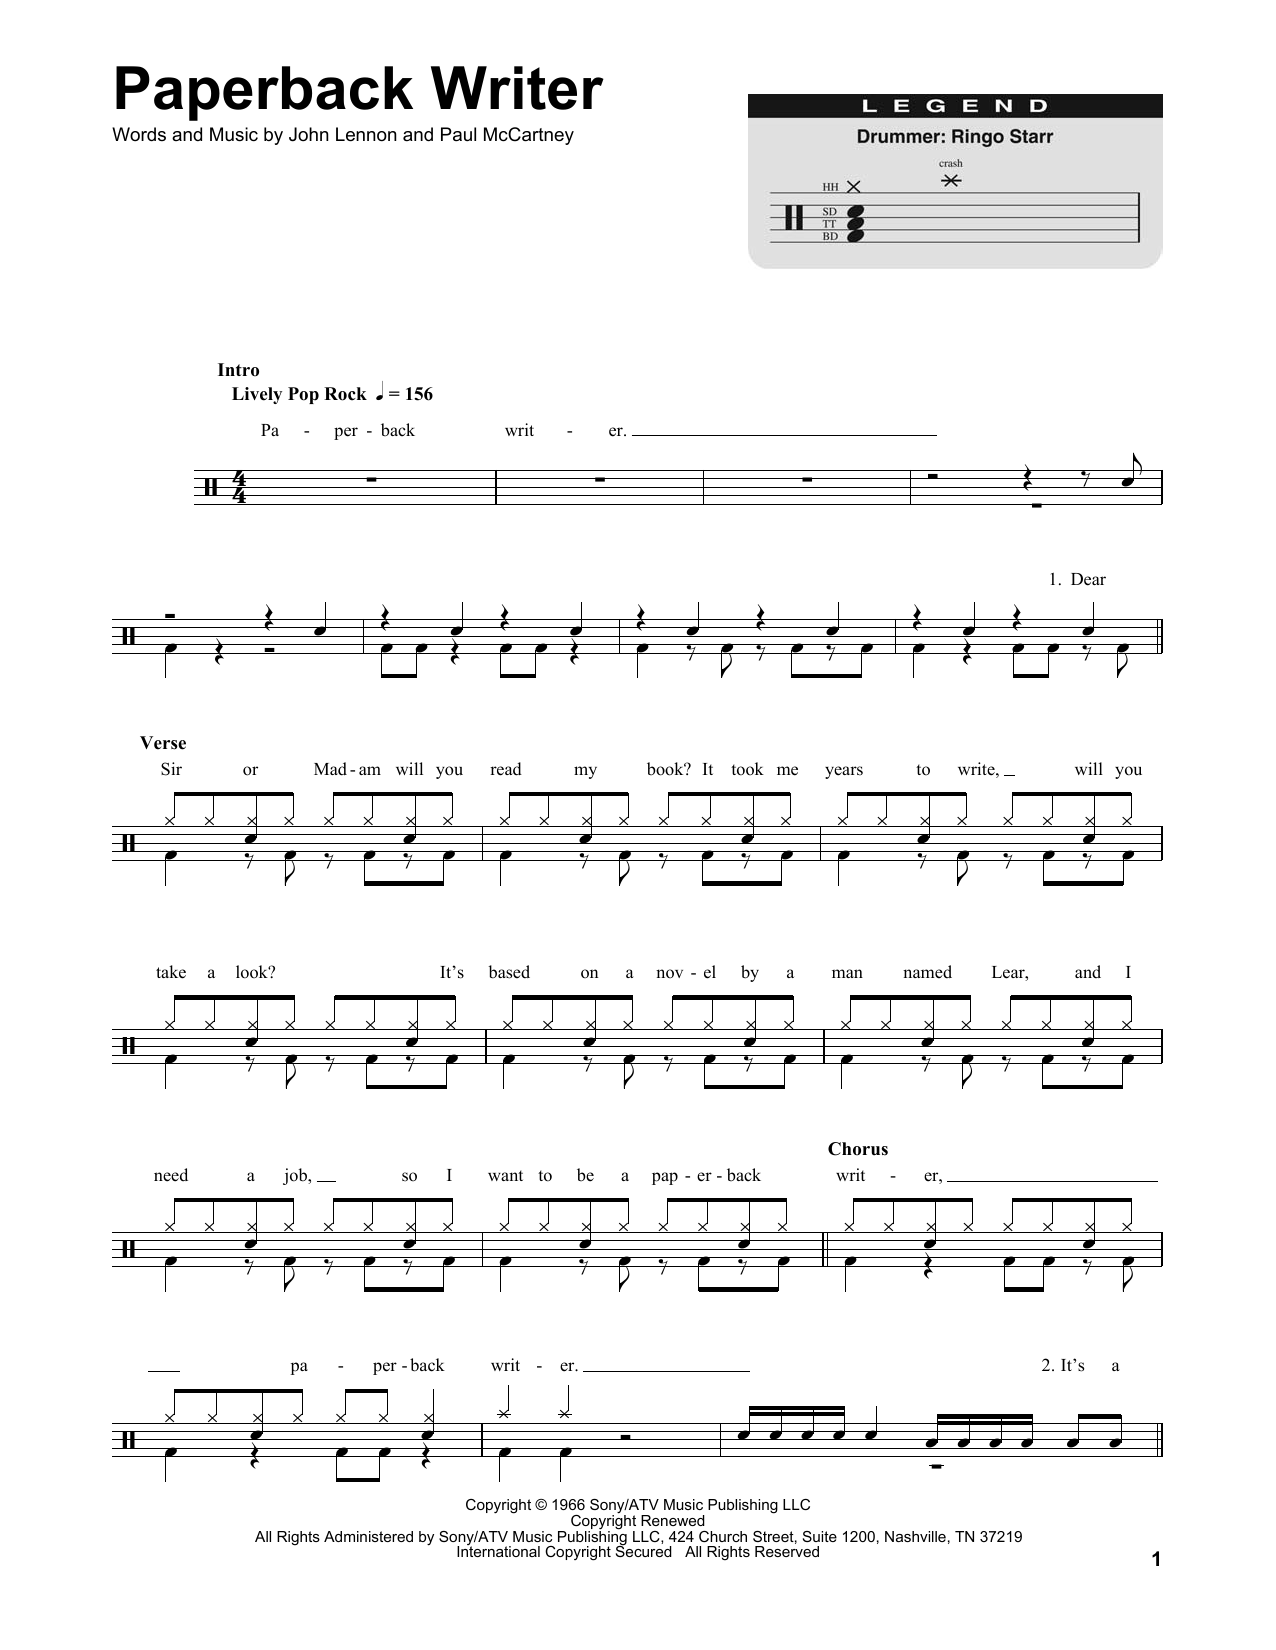 iPad iTunes iBookstore   Constructing walking jazz bass lines iPad